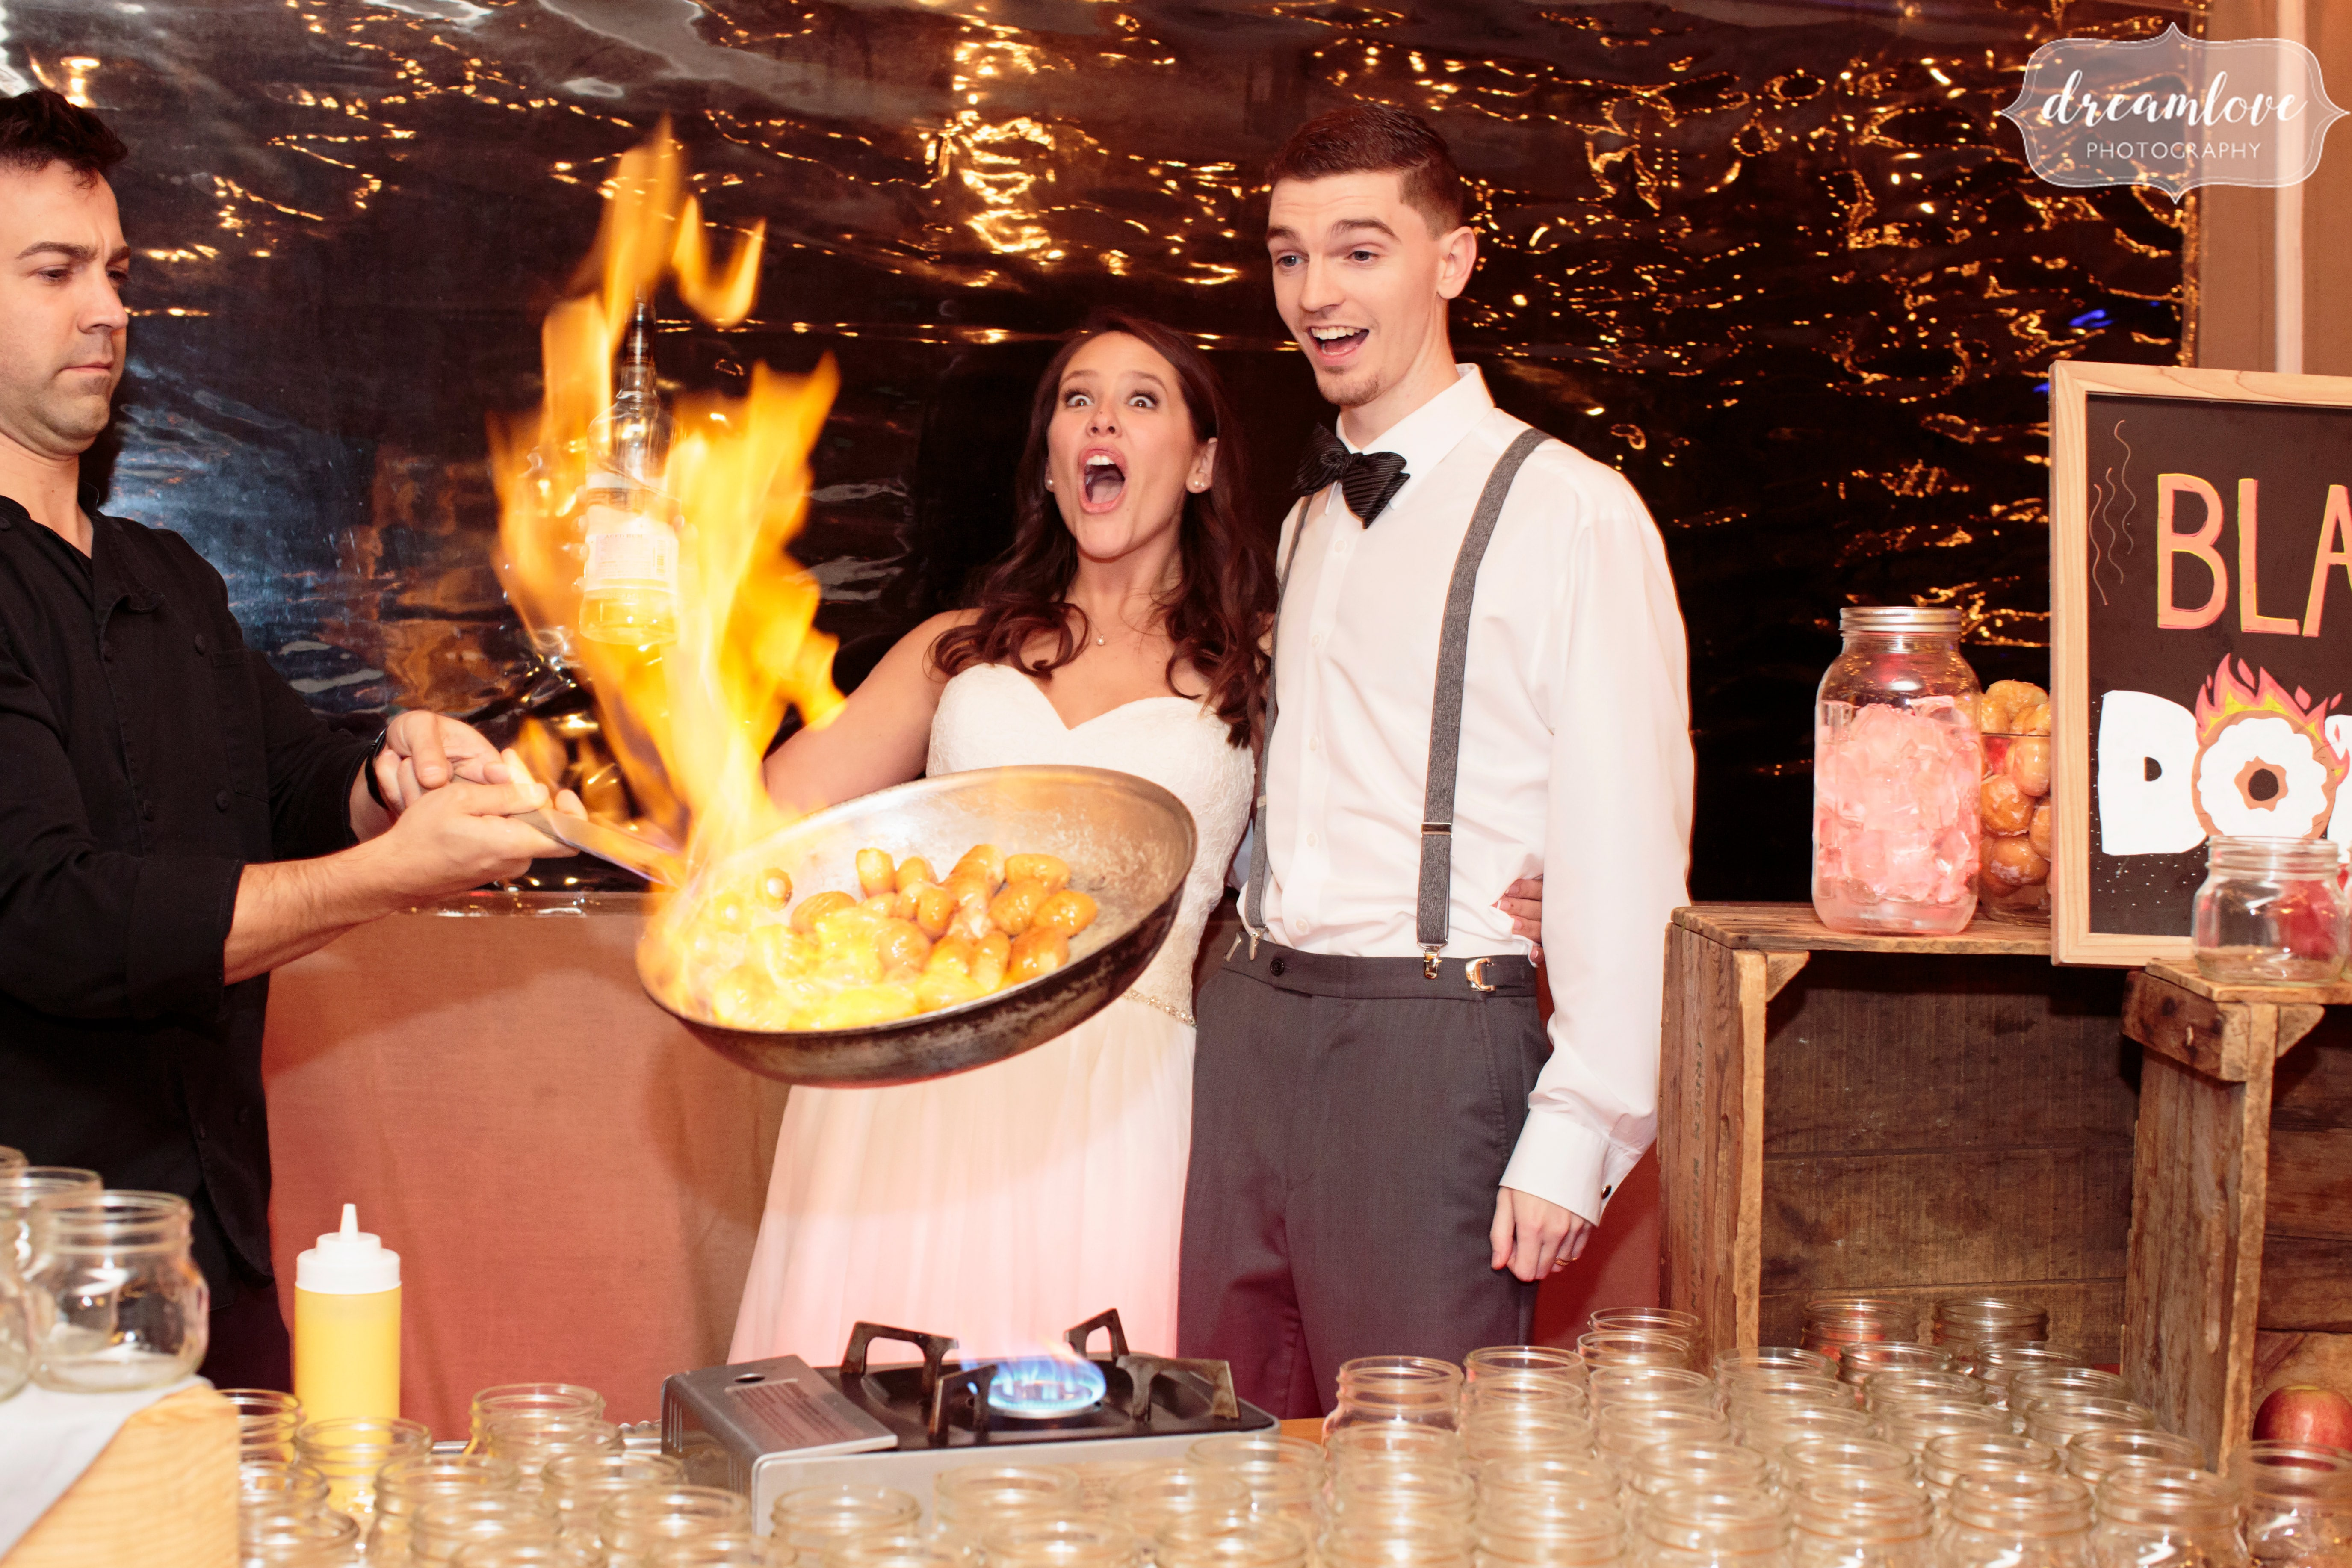 The bride is surprised when a pan catches on fire while frying doughnuts at her rustic wedding reception on Crystal Lake Pavilion.